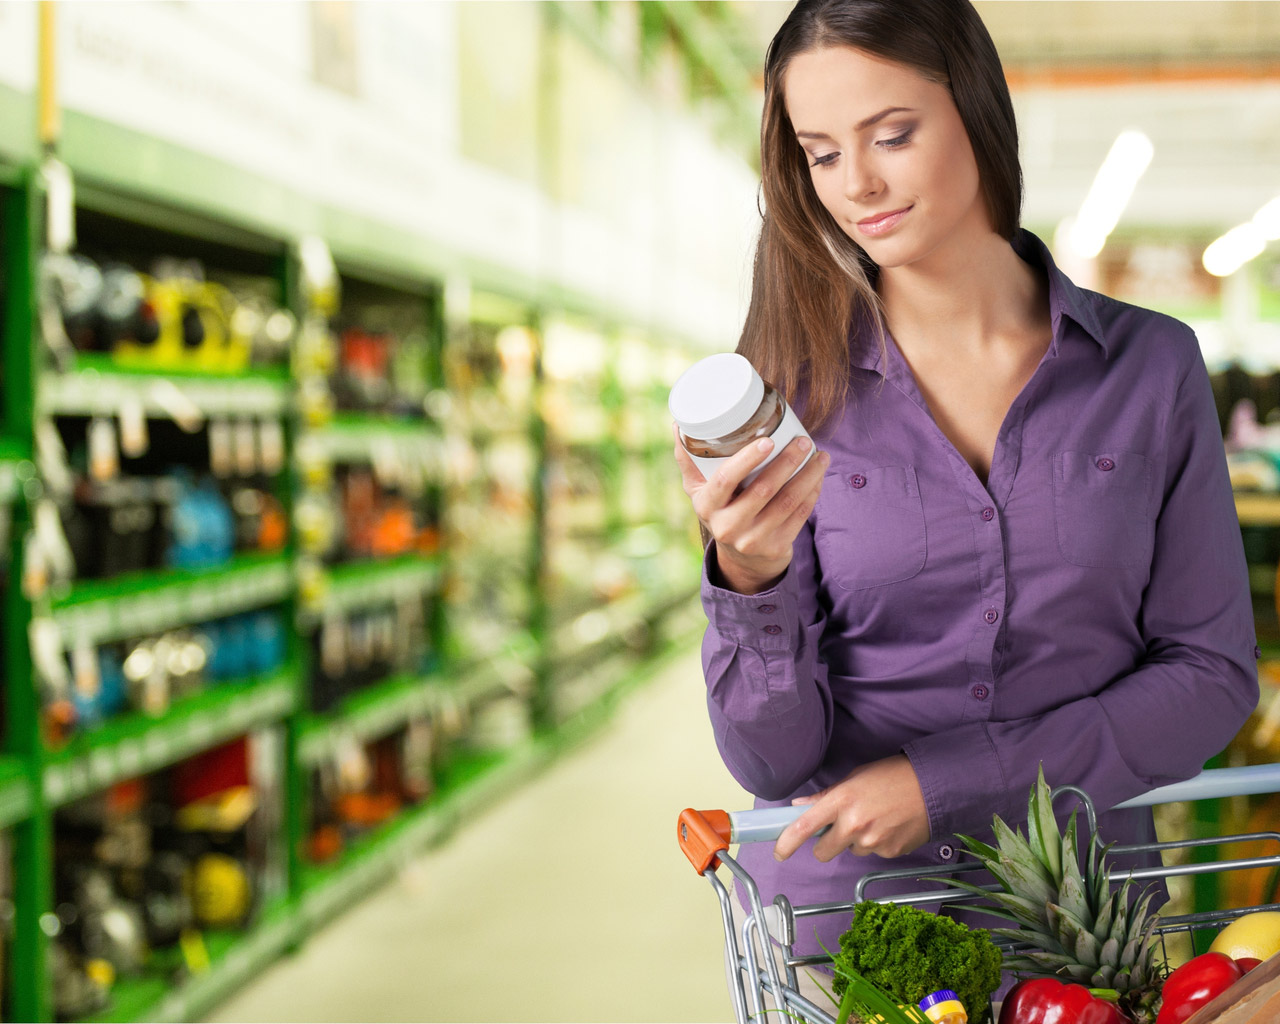 Woman in purple shirt reading label of food product in supermarket